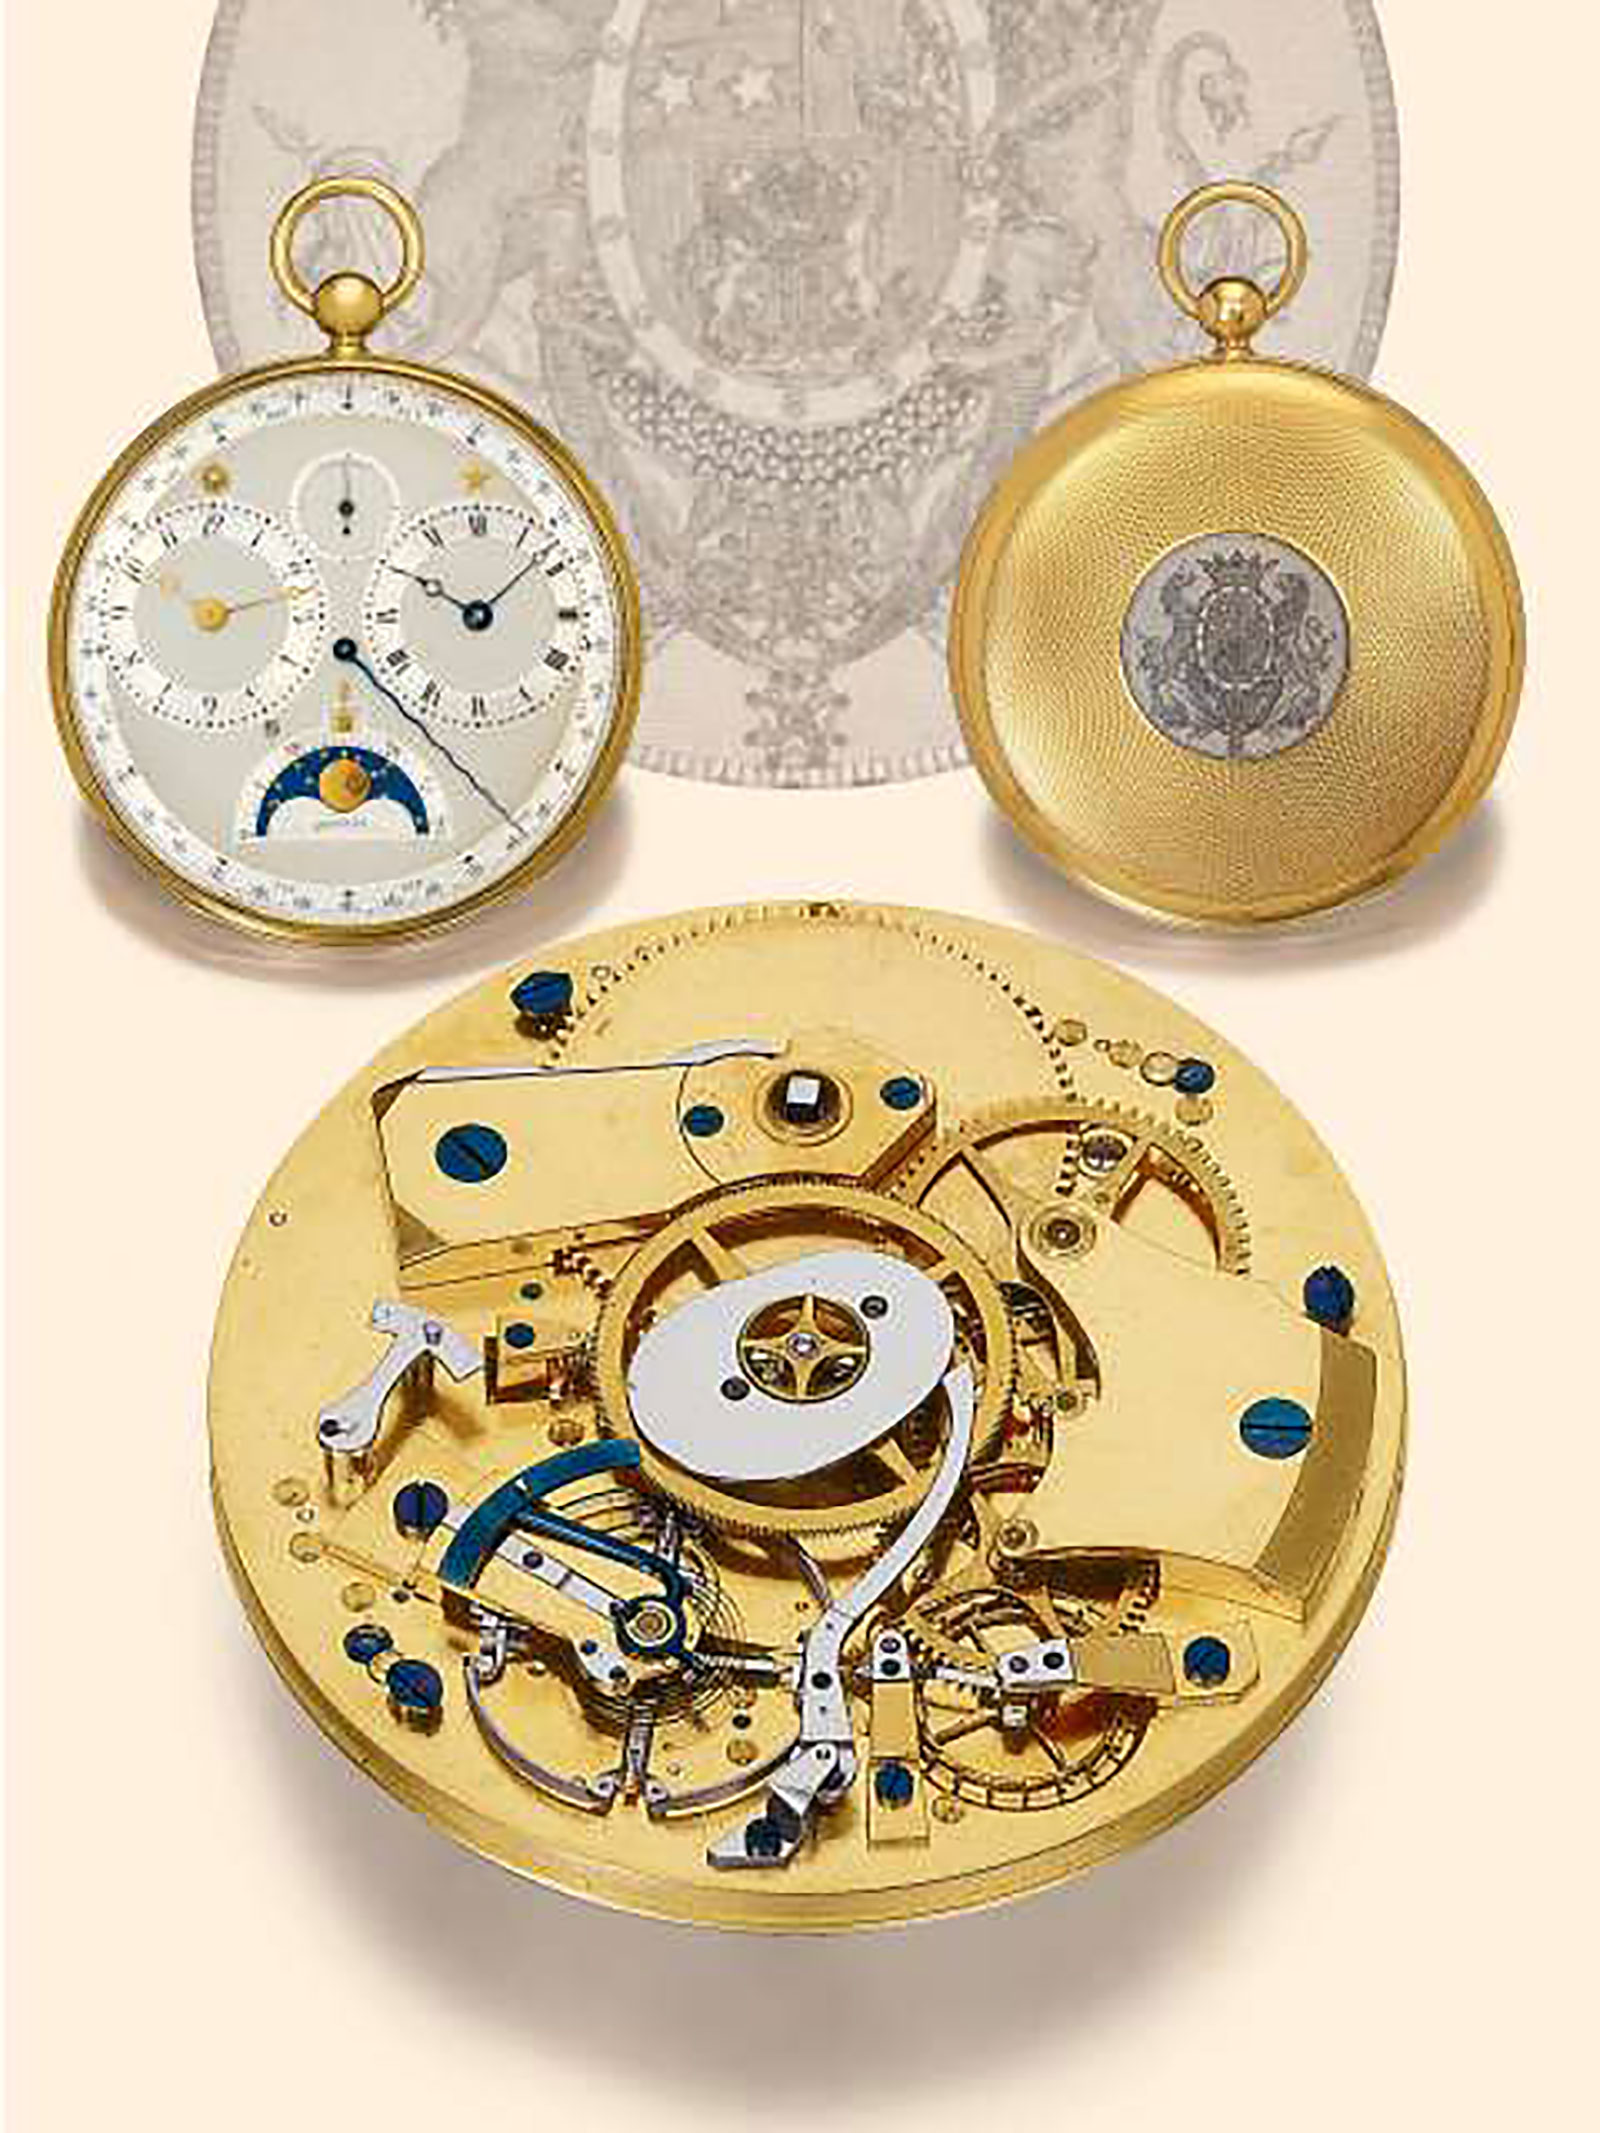 breguet pocket watch 2807